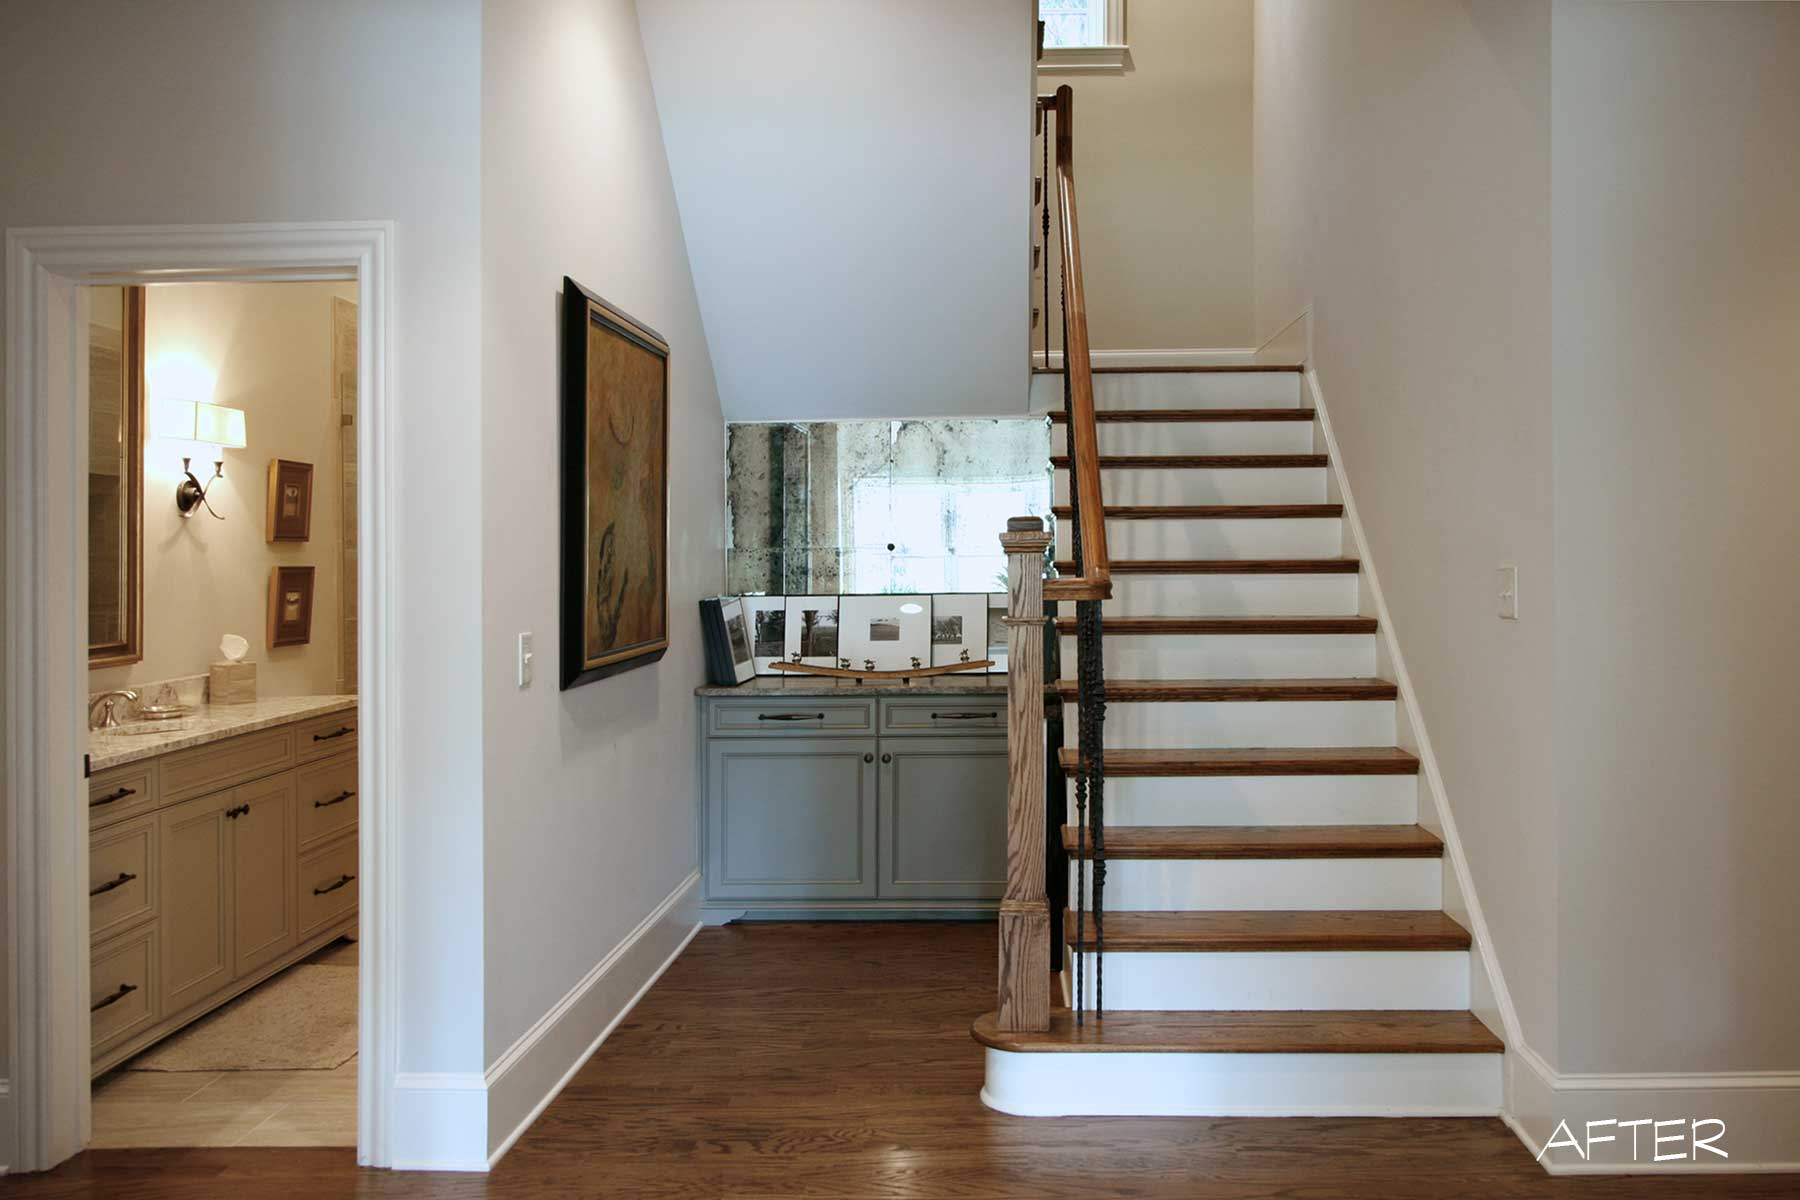 Stairs to basement after remodeling